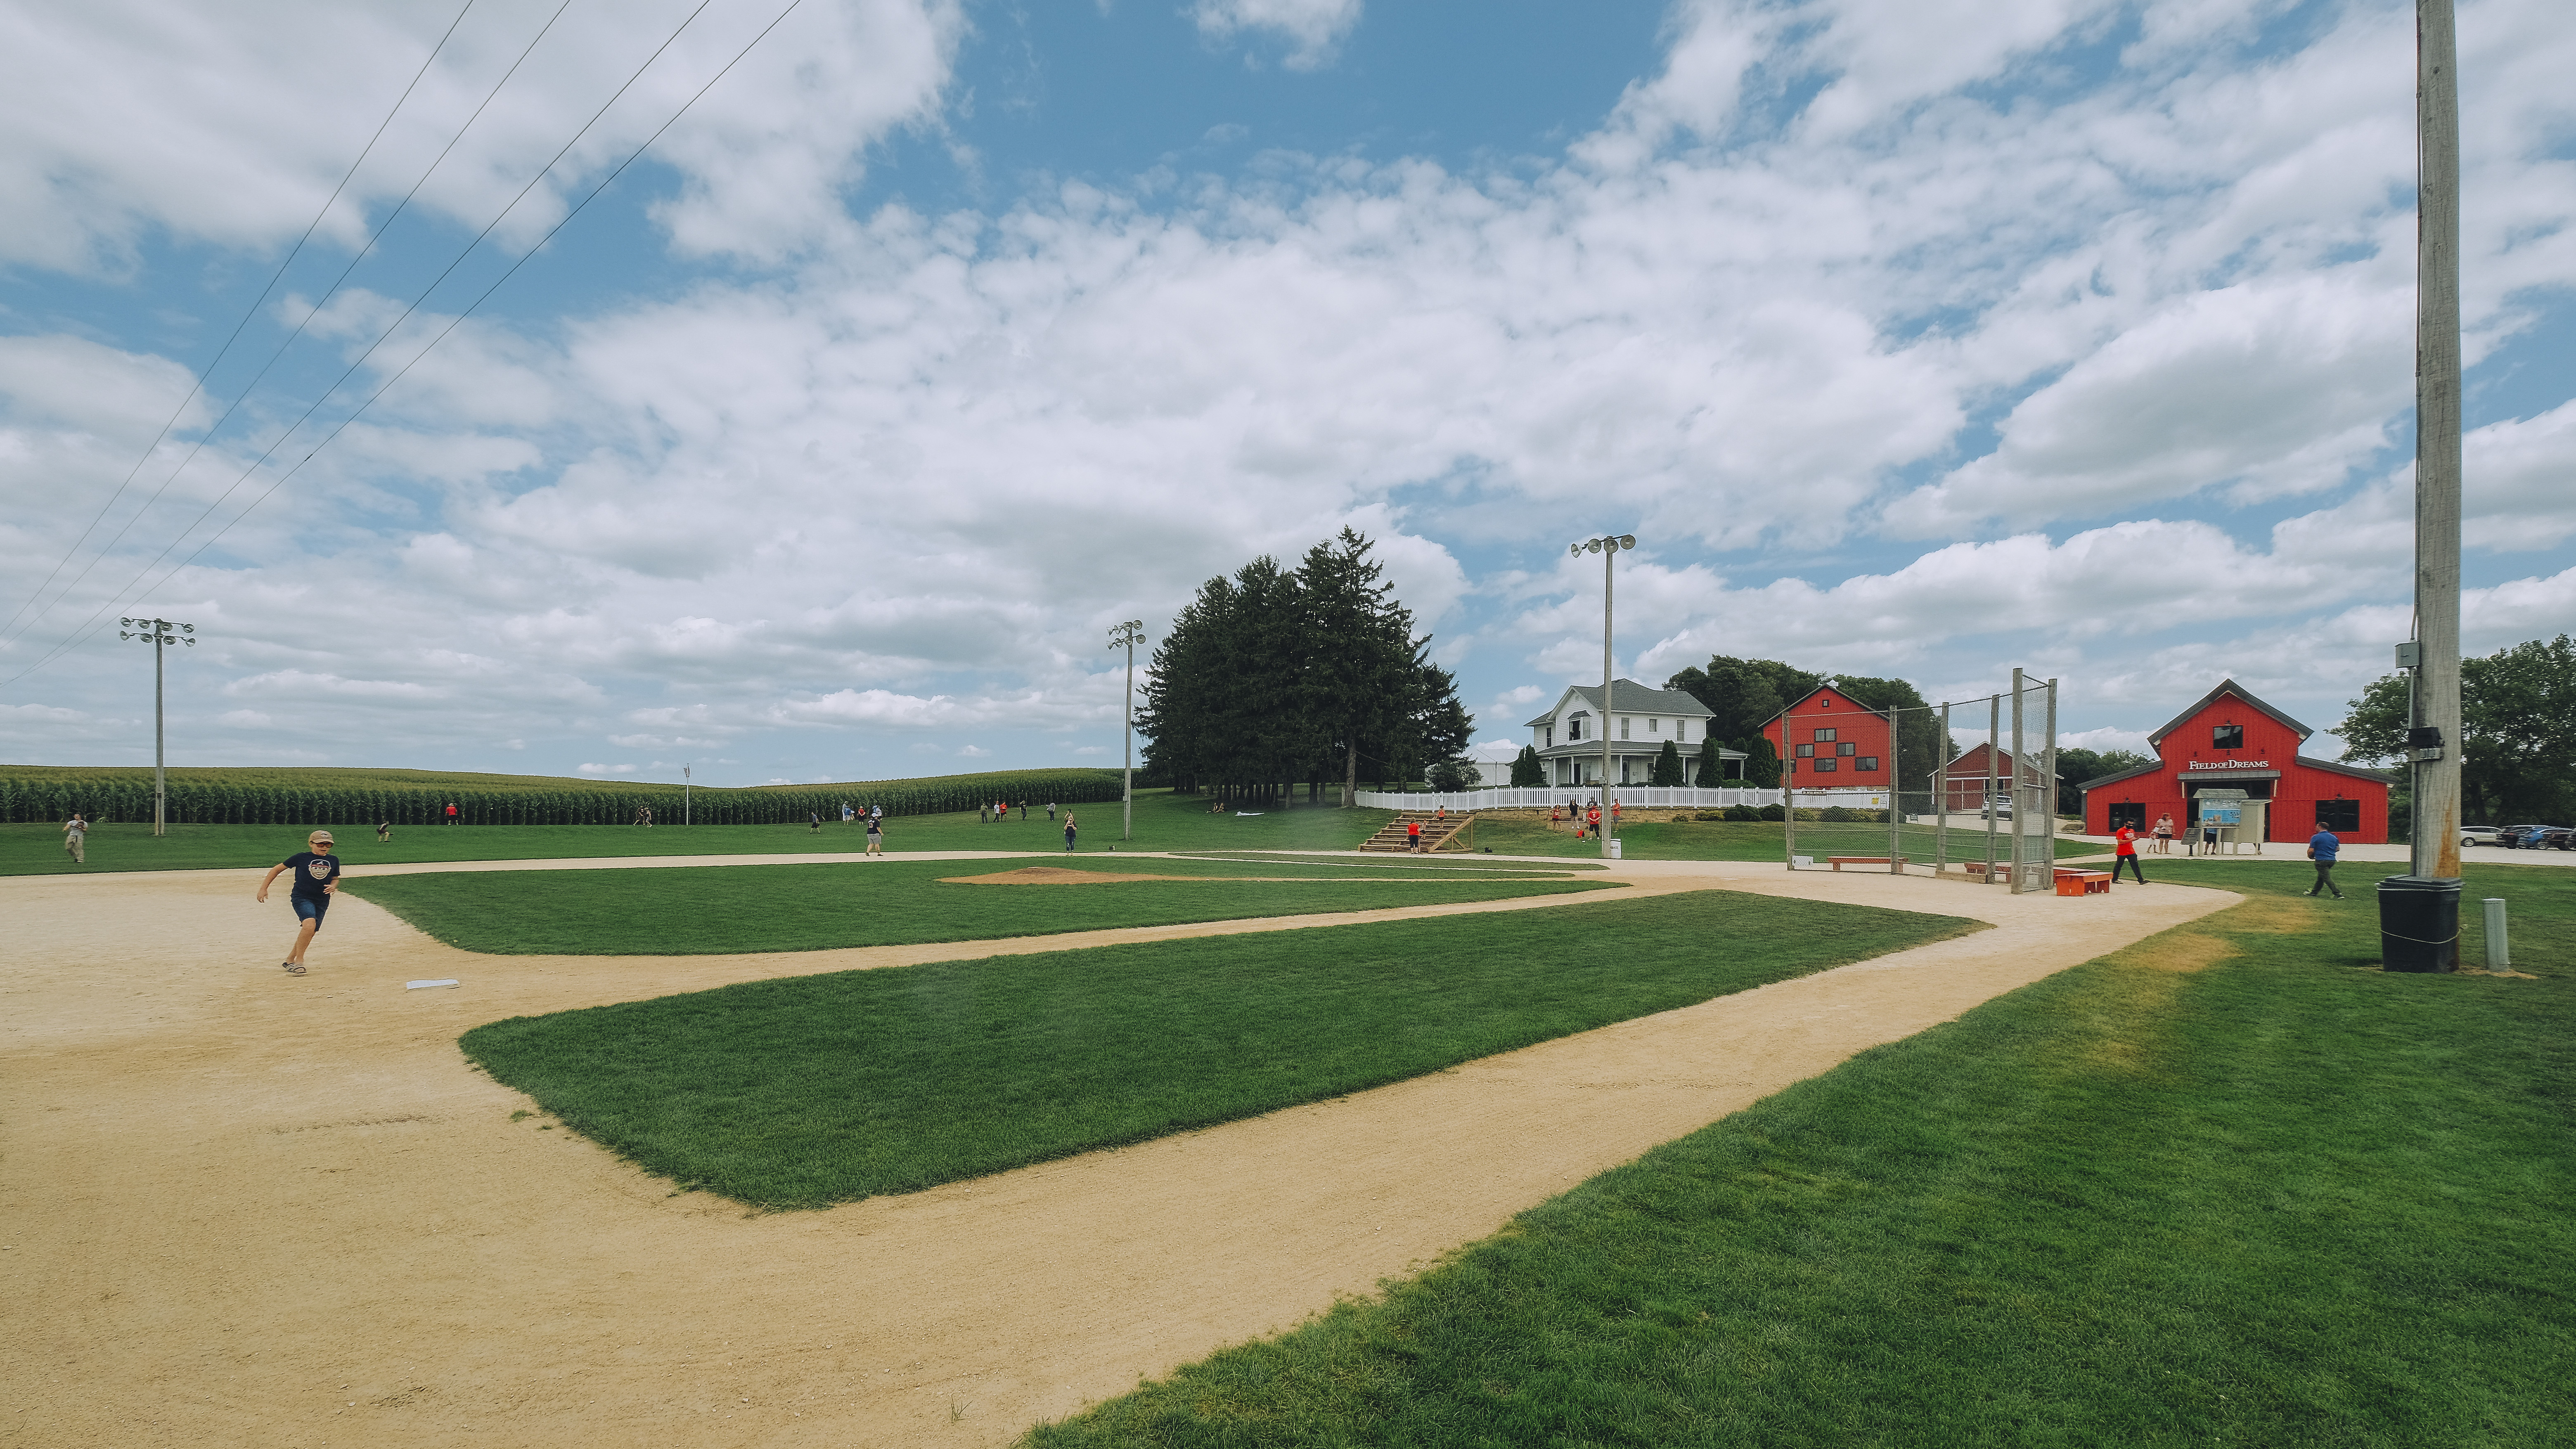 Field of Dreams Game: New York Yankees vs. Chicago White Sox at Field of Dreams - Dyersville, Iowa